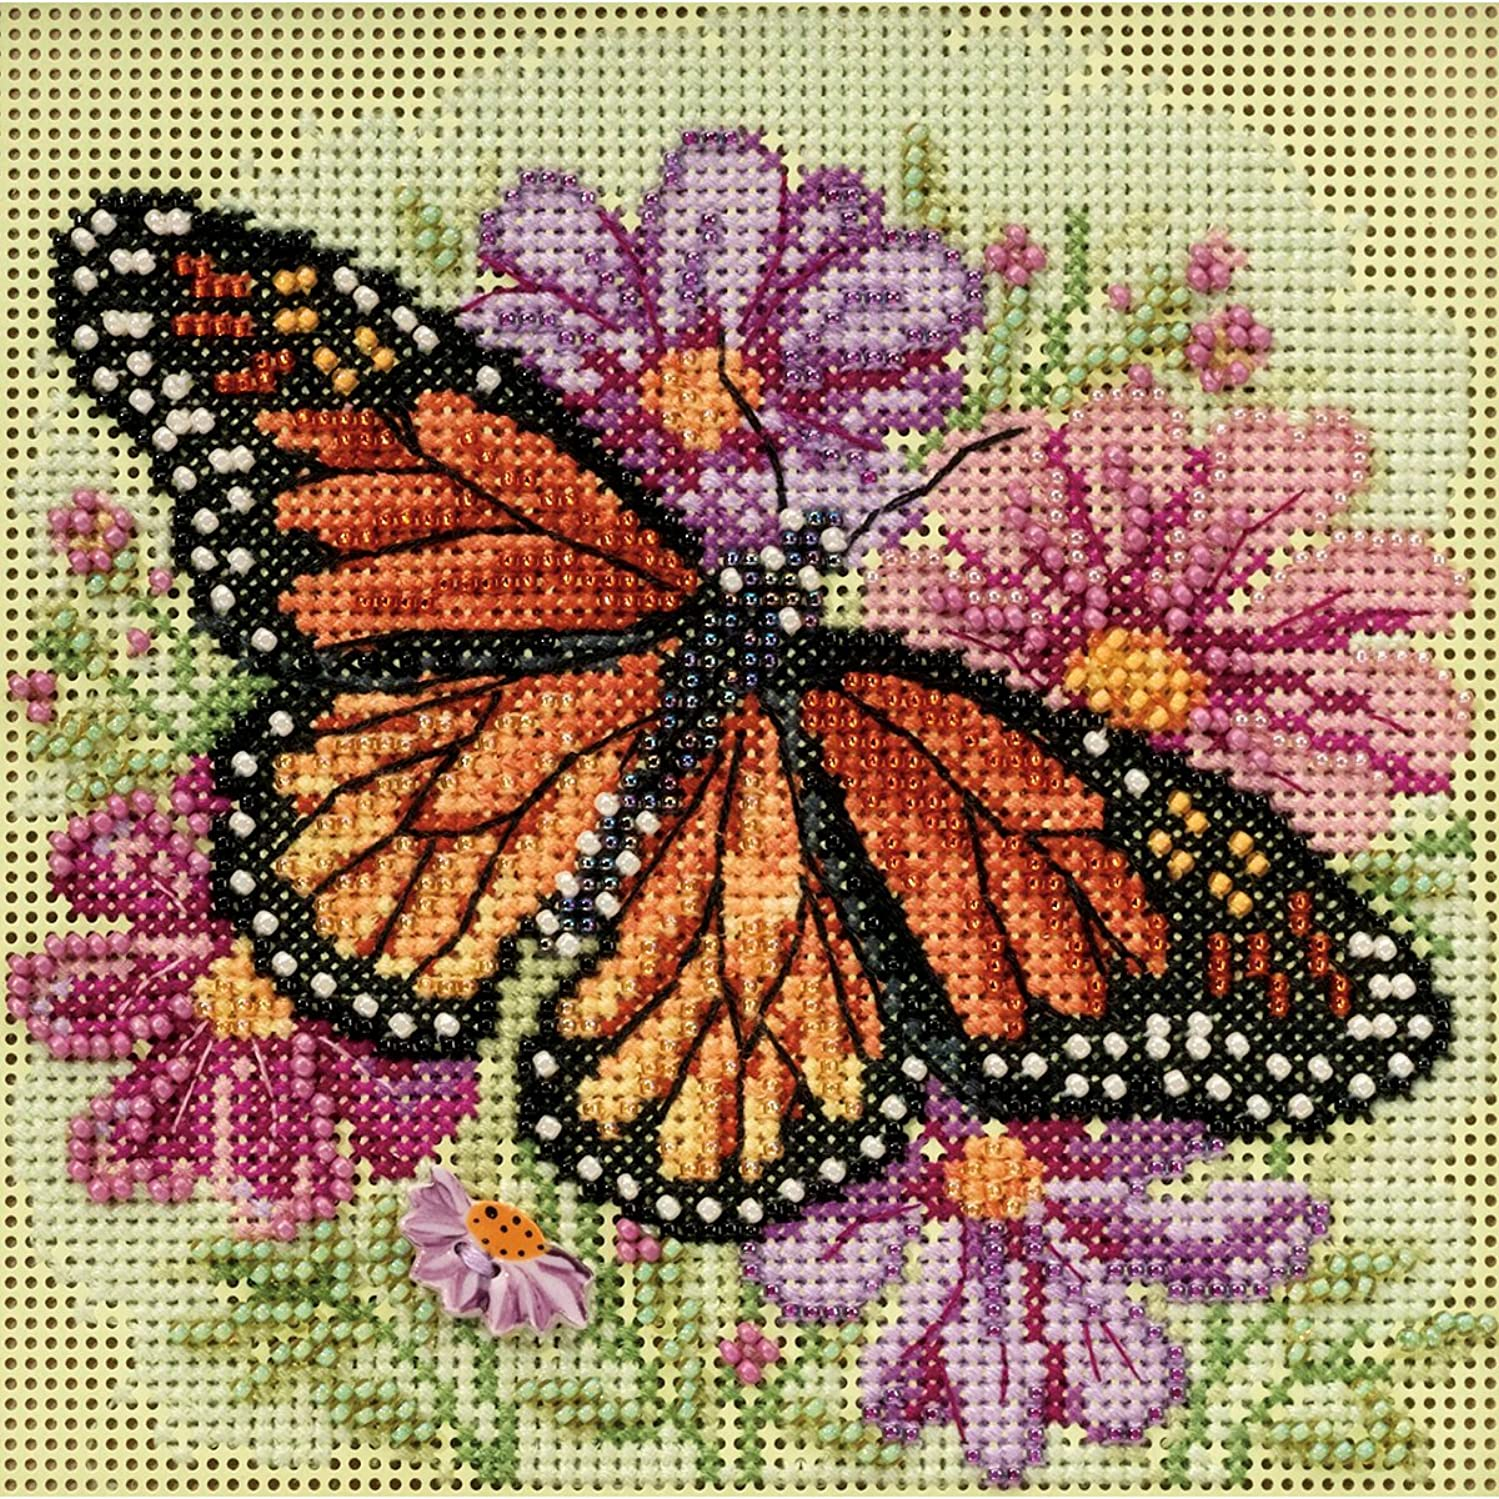 Winged Monarch Butterfly Beaded Counted Cross Stitch Kit Mill Hill 2015 Buttons & Beads Spring MH145105